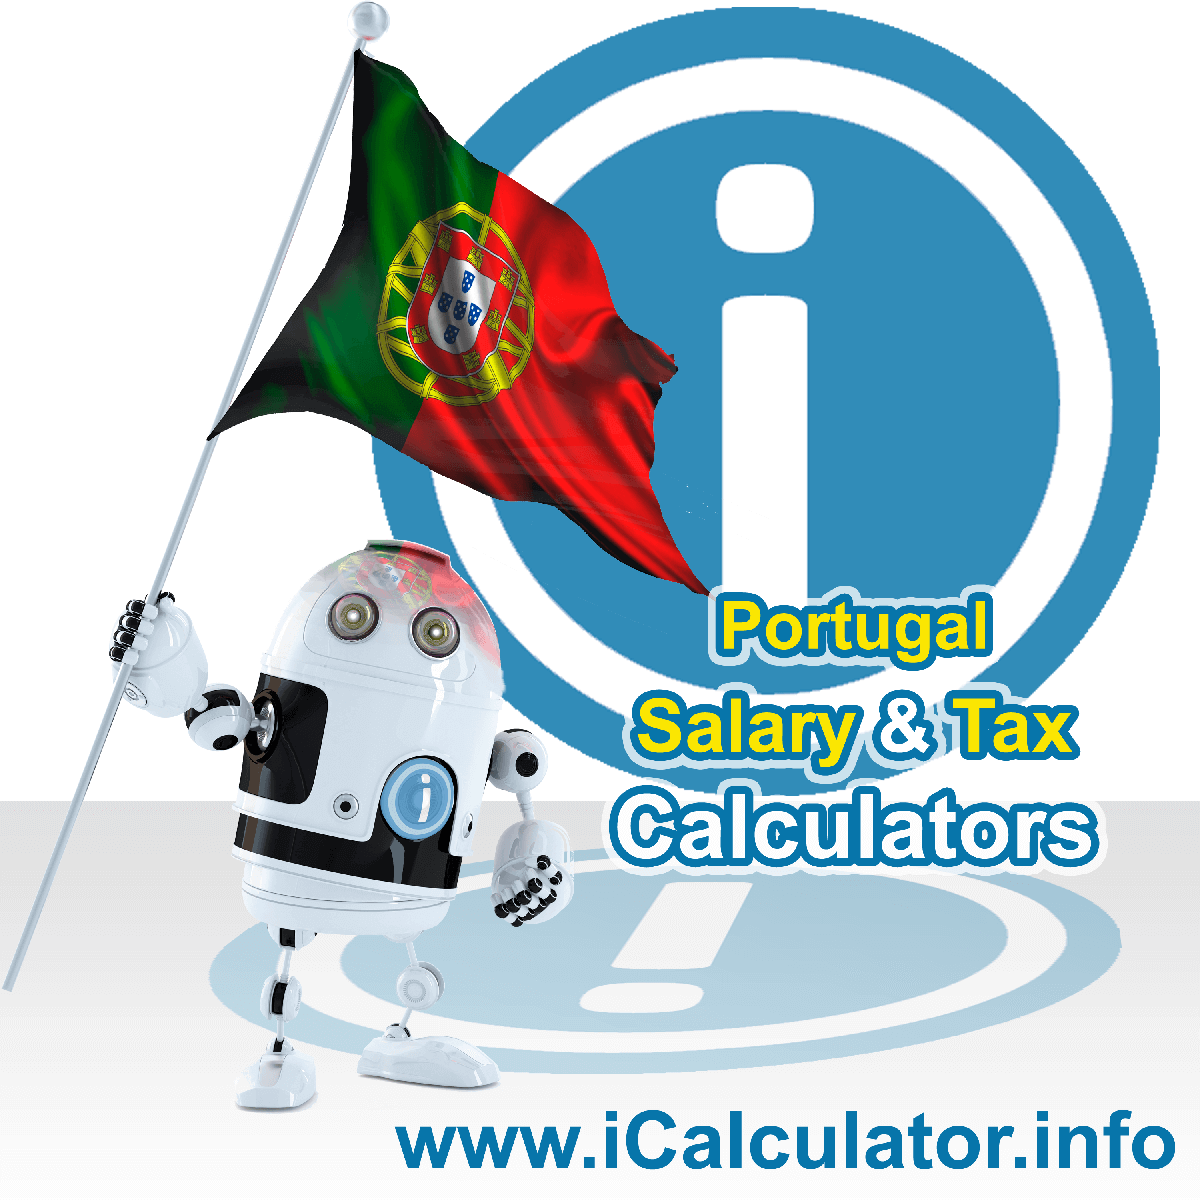 Portugal Wage Calculator. This image shows the Portugal flag and information relating to the tax formula for the Portugal Tax Calculator